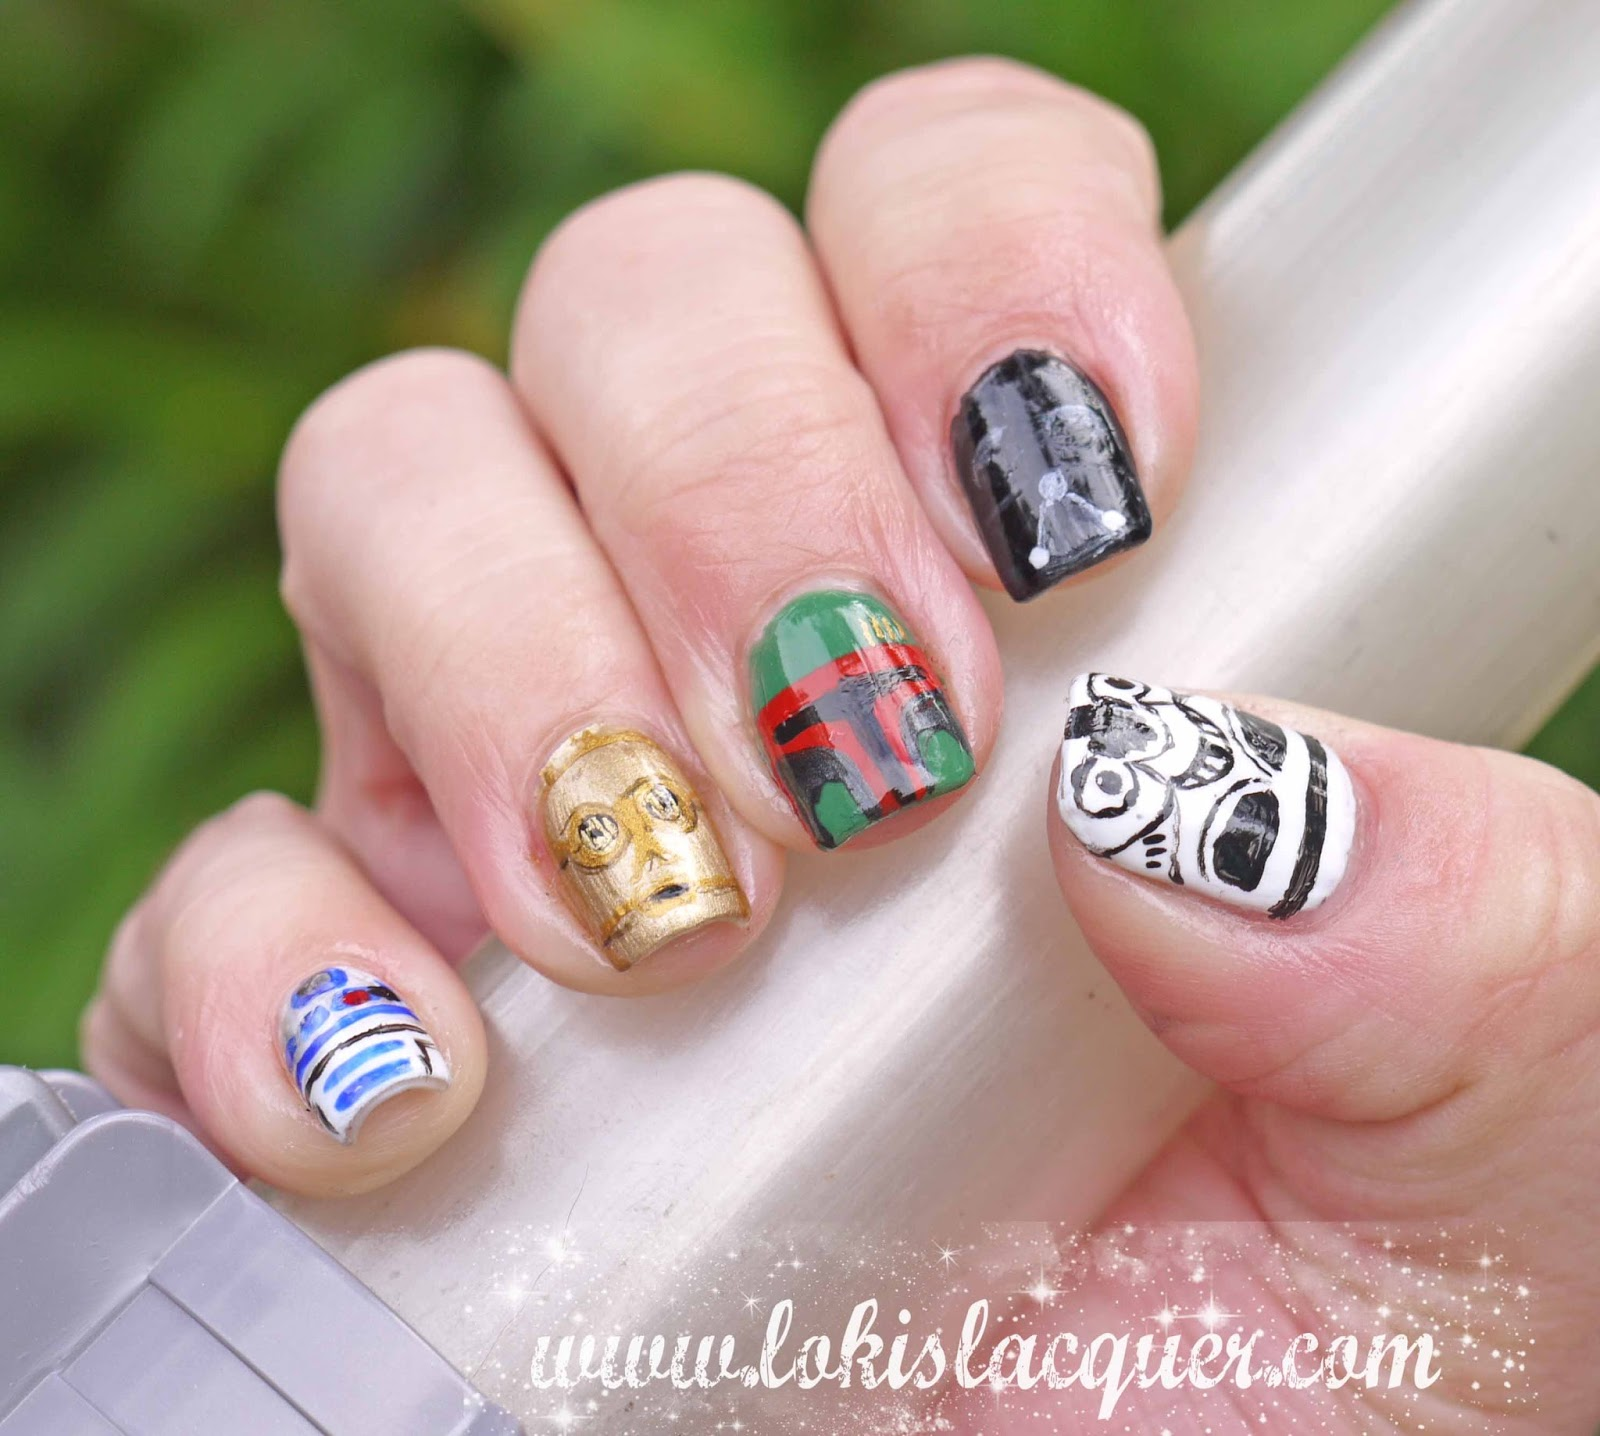 Loki\'s Lacquer: May the 4th be with you........ Star Wars Nails!